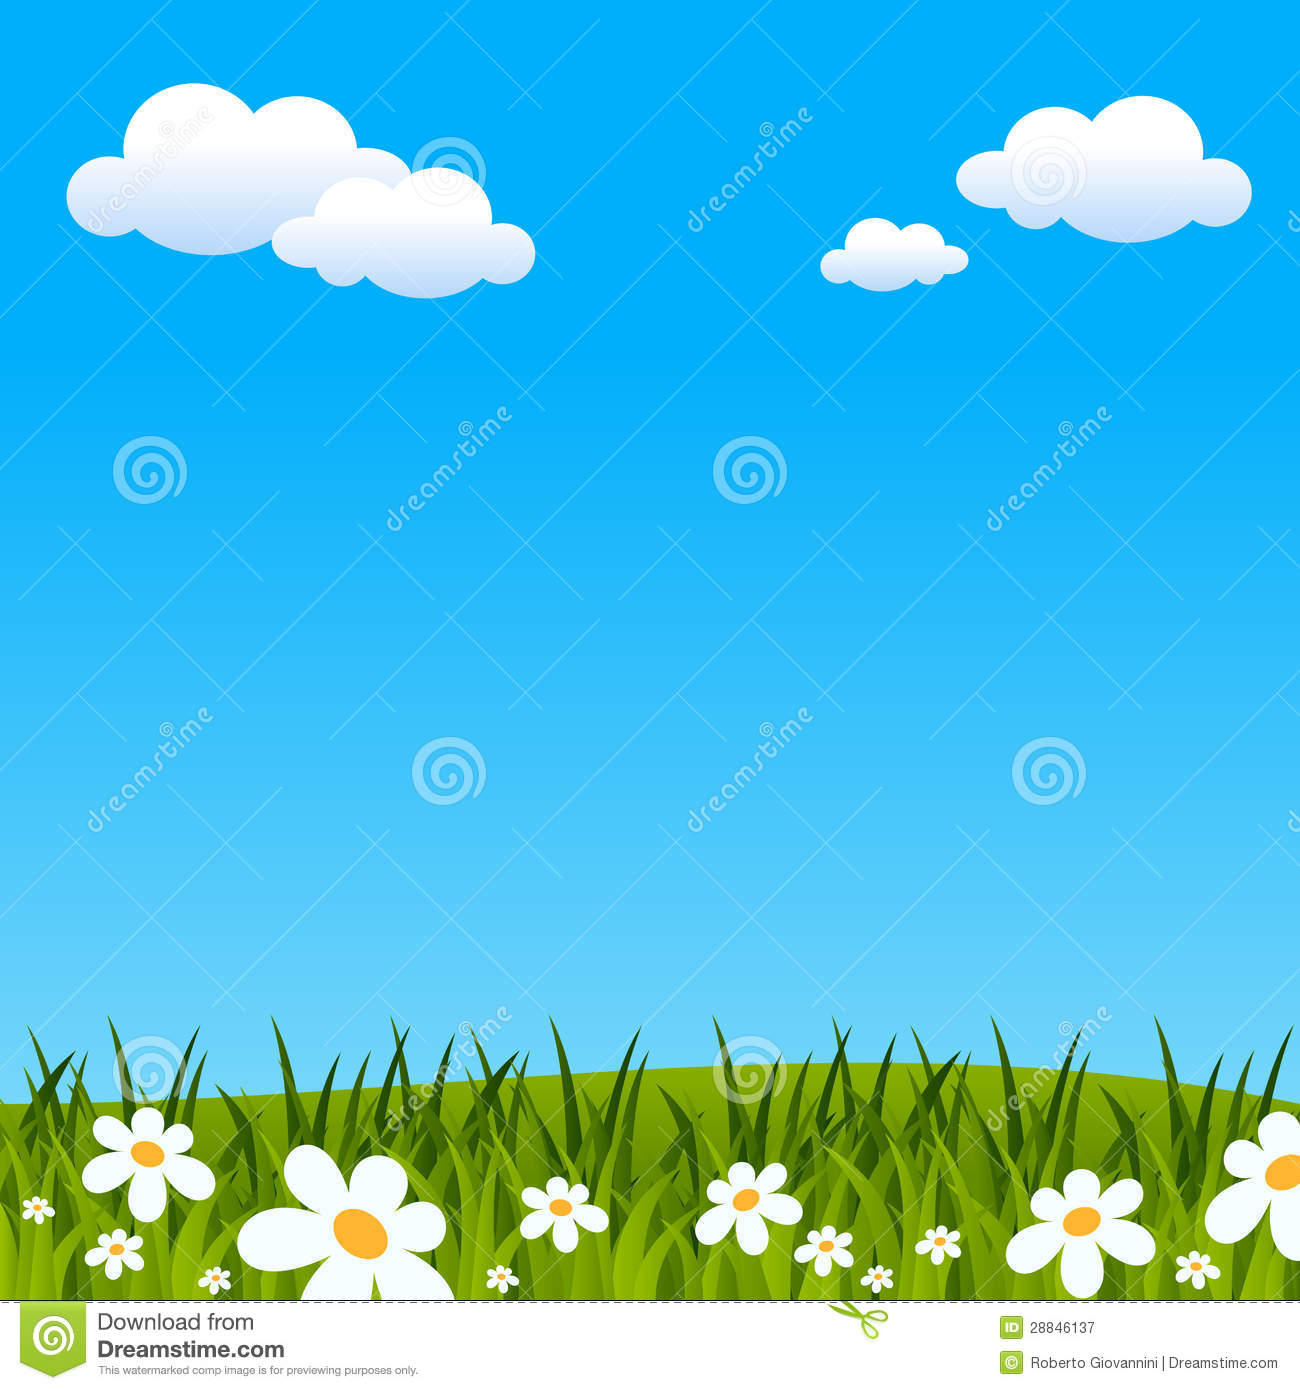 Free clipart images background.